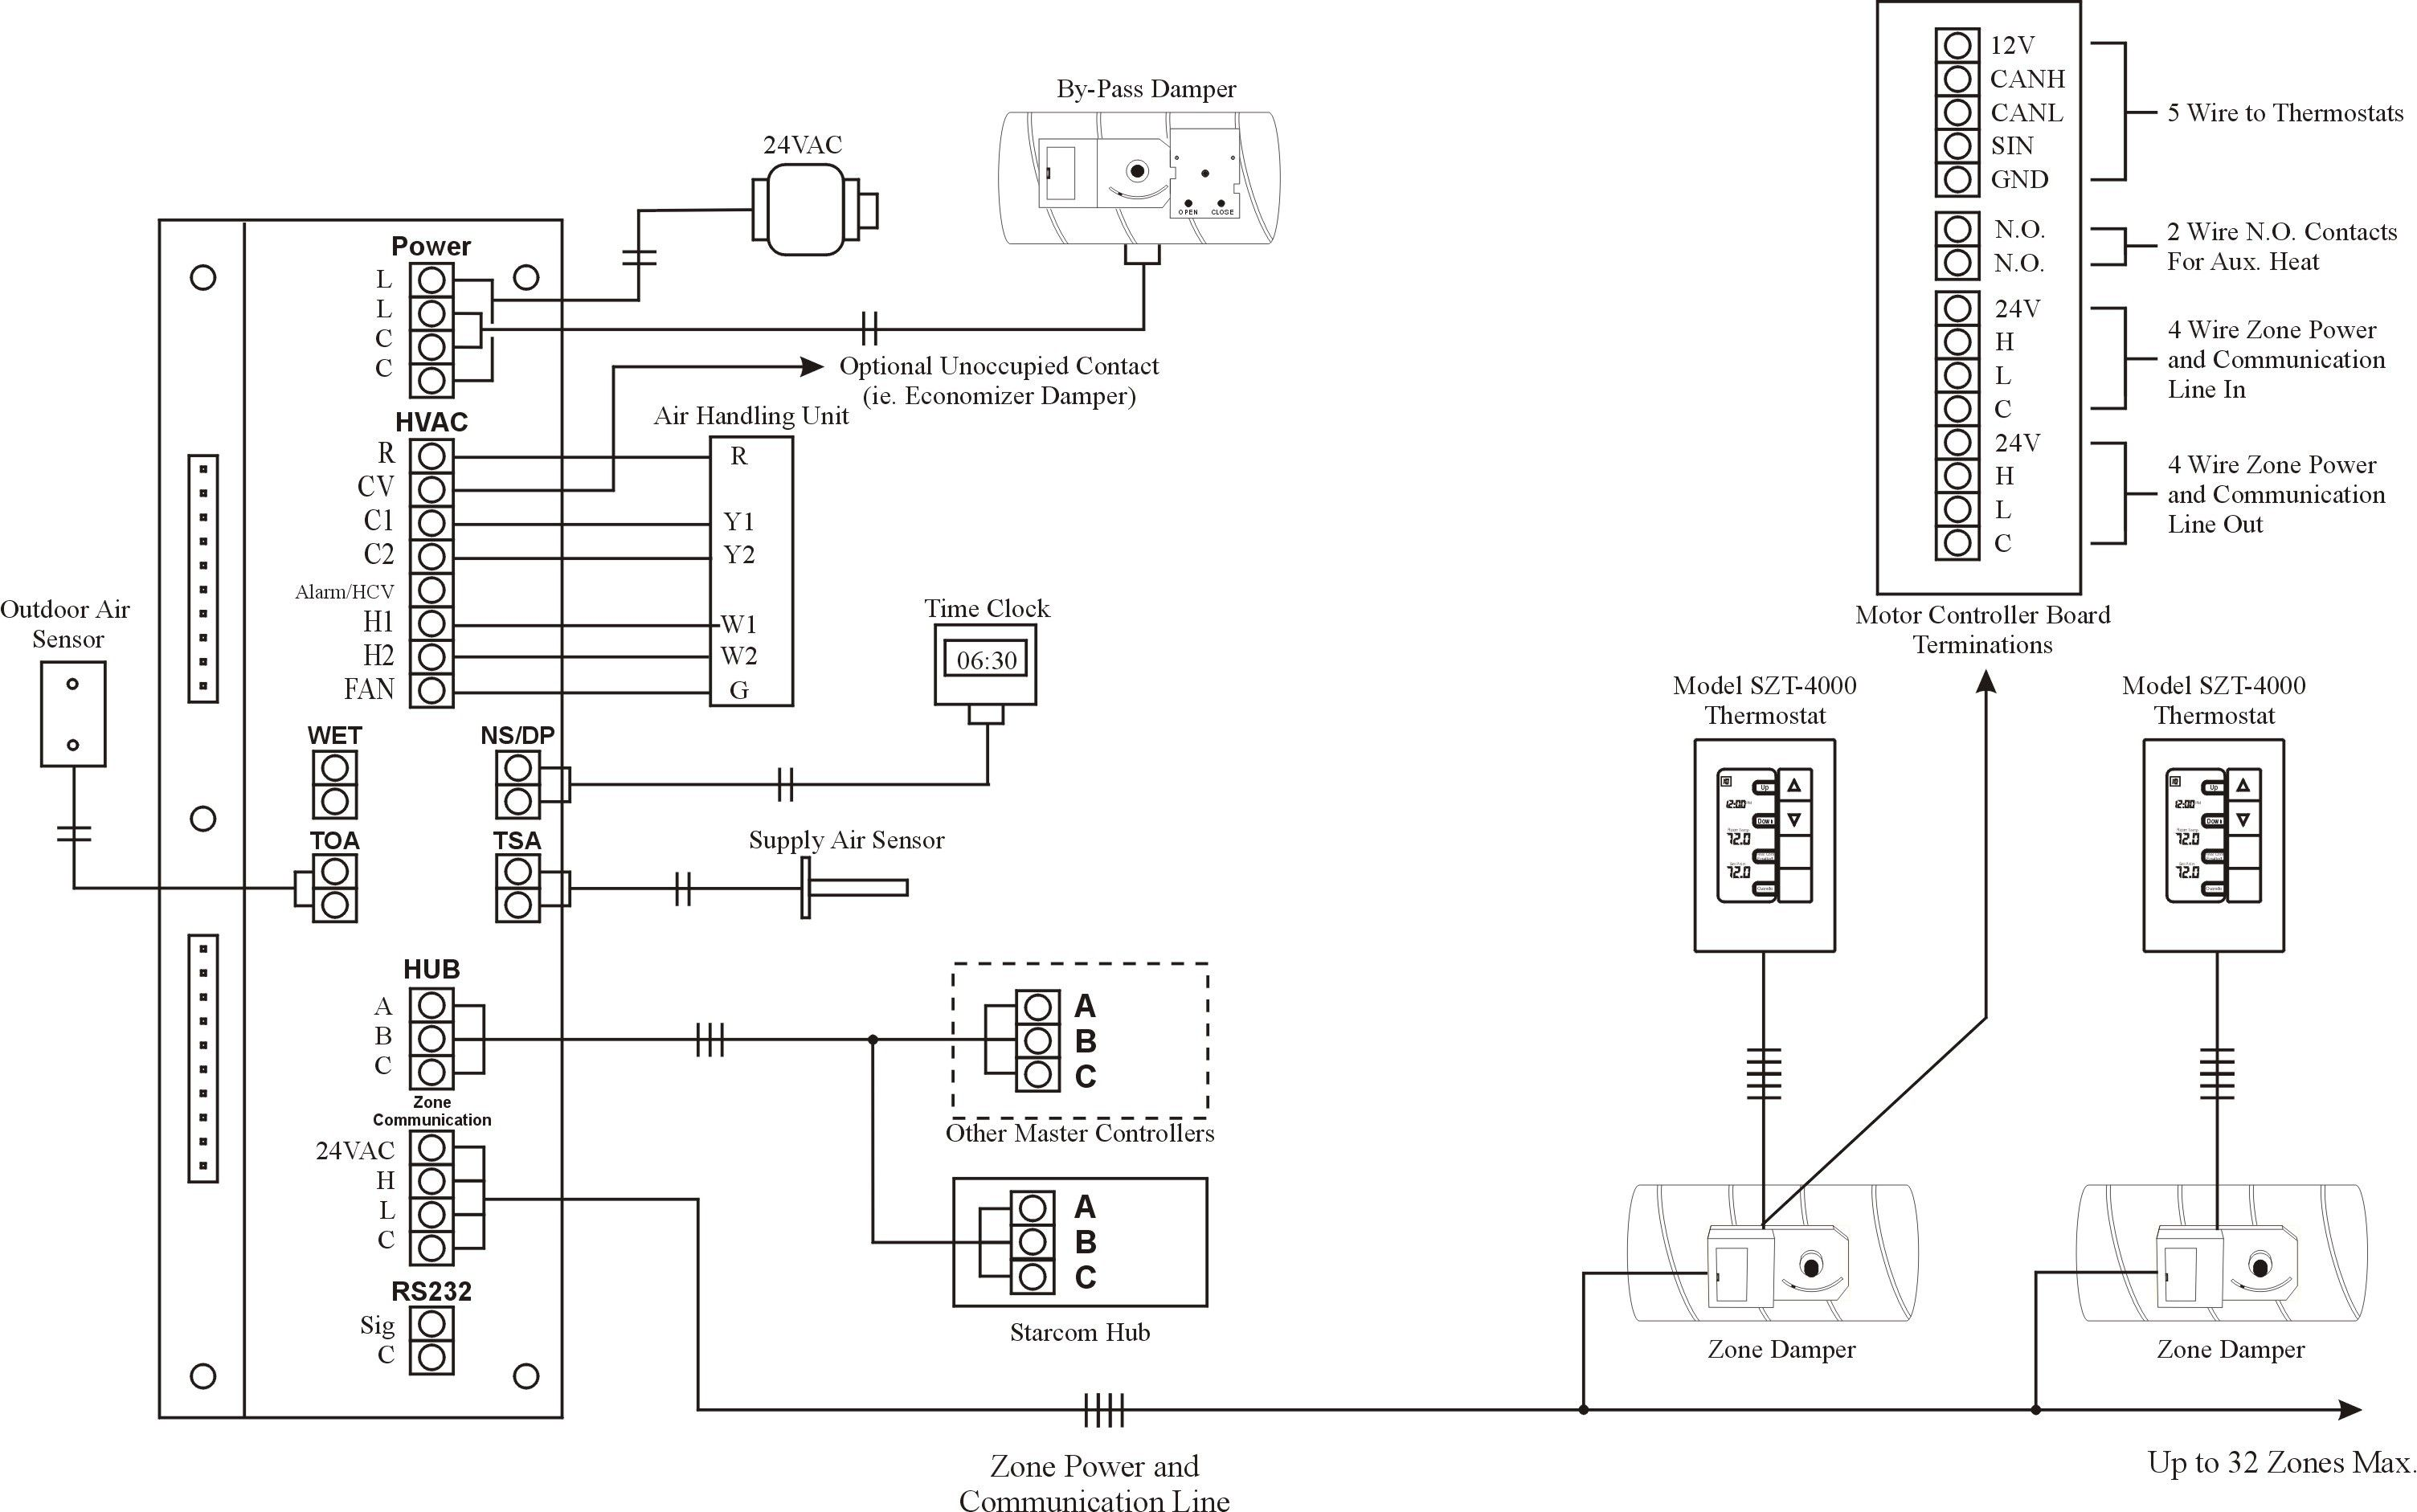 Unique Control Wiring Diagram Wiringdiagram Diagramming Diagramm Visuals Visualisation Graphical Check More A Home Security Systems Alarm System Diagram